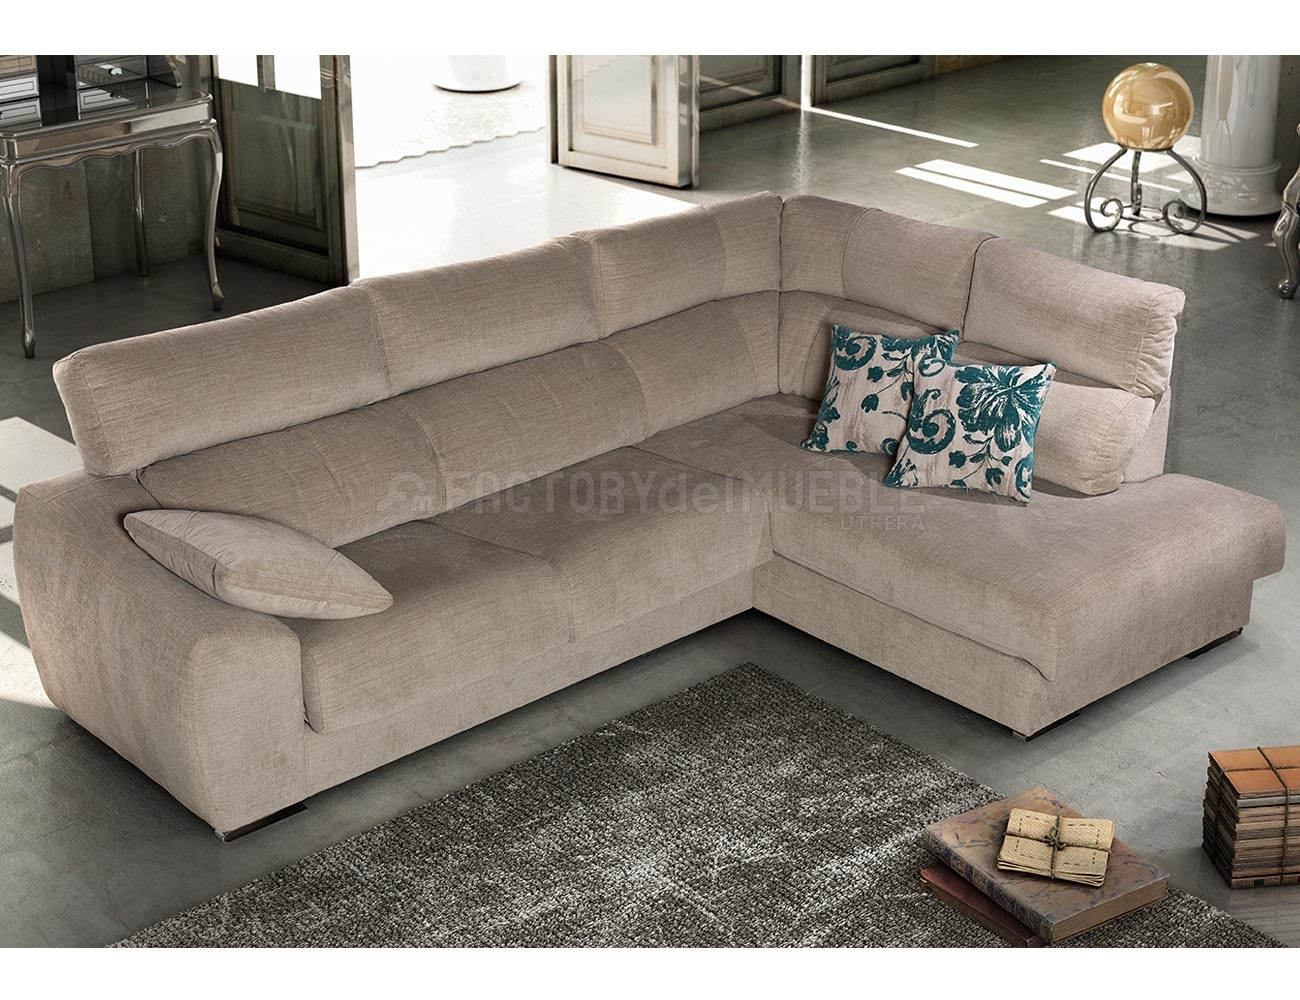 Sofa chaiselongue rincon moderno forma11